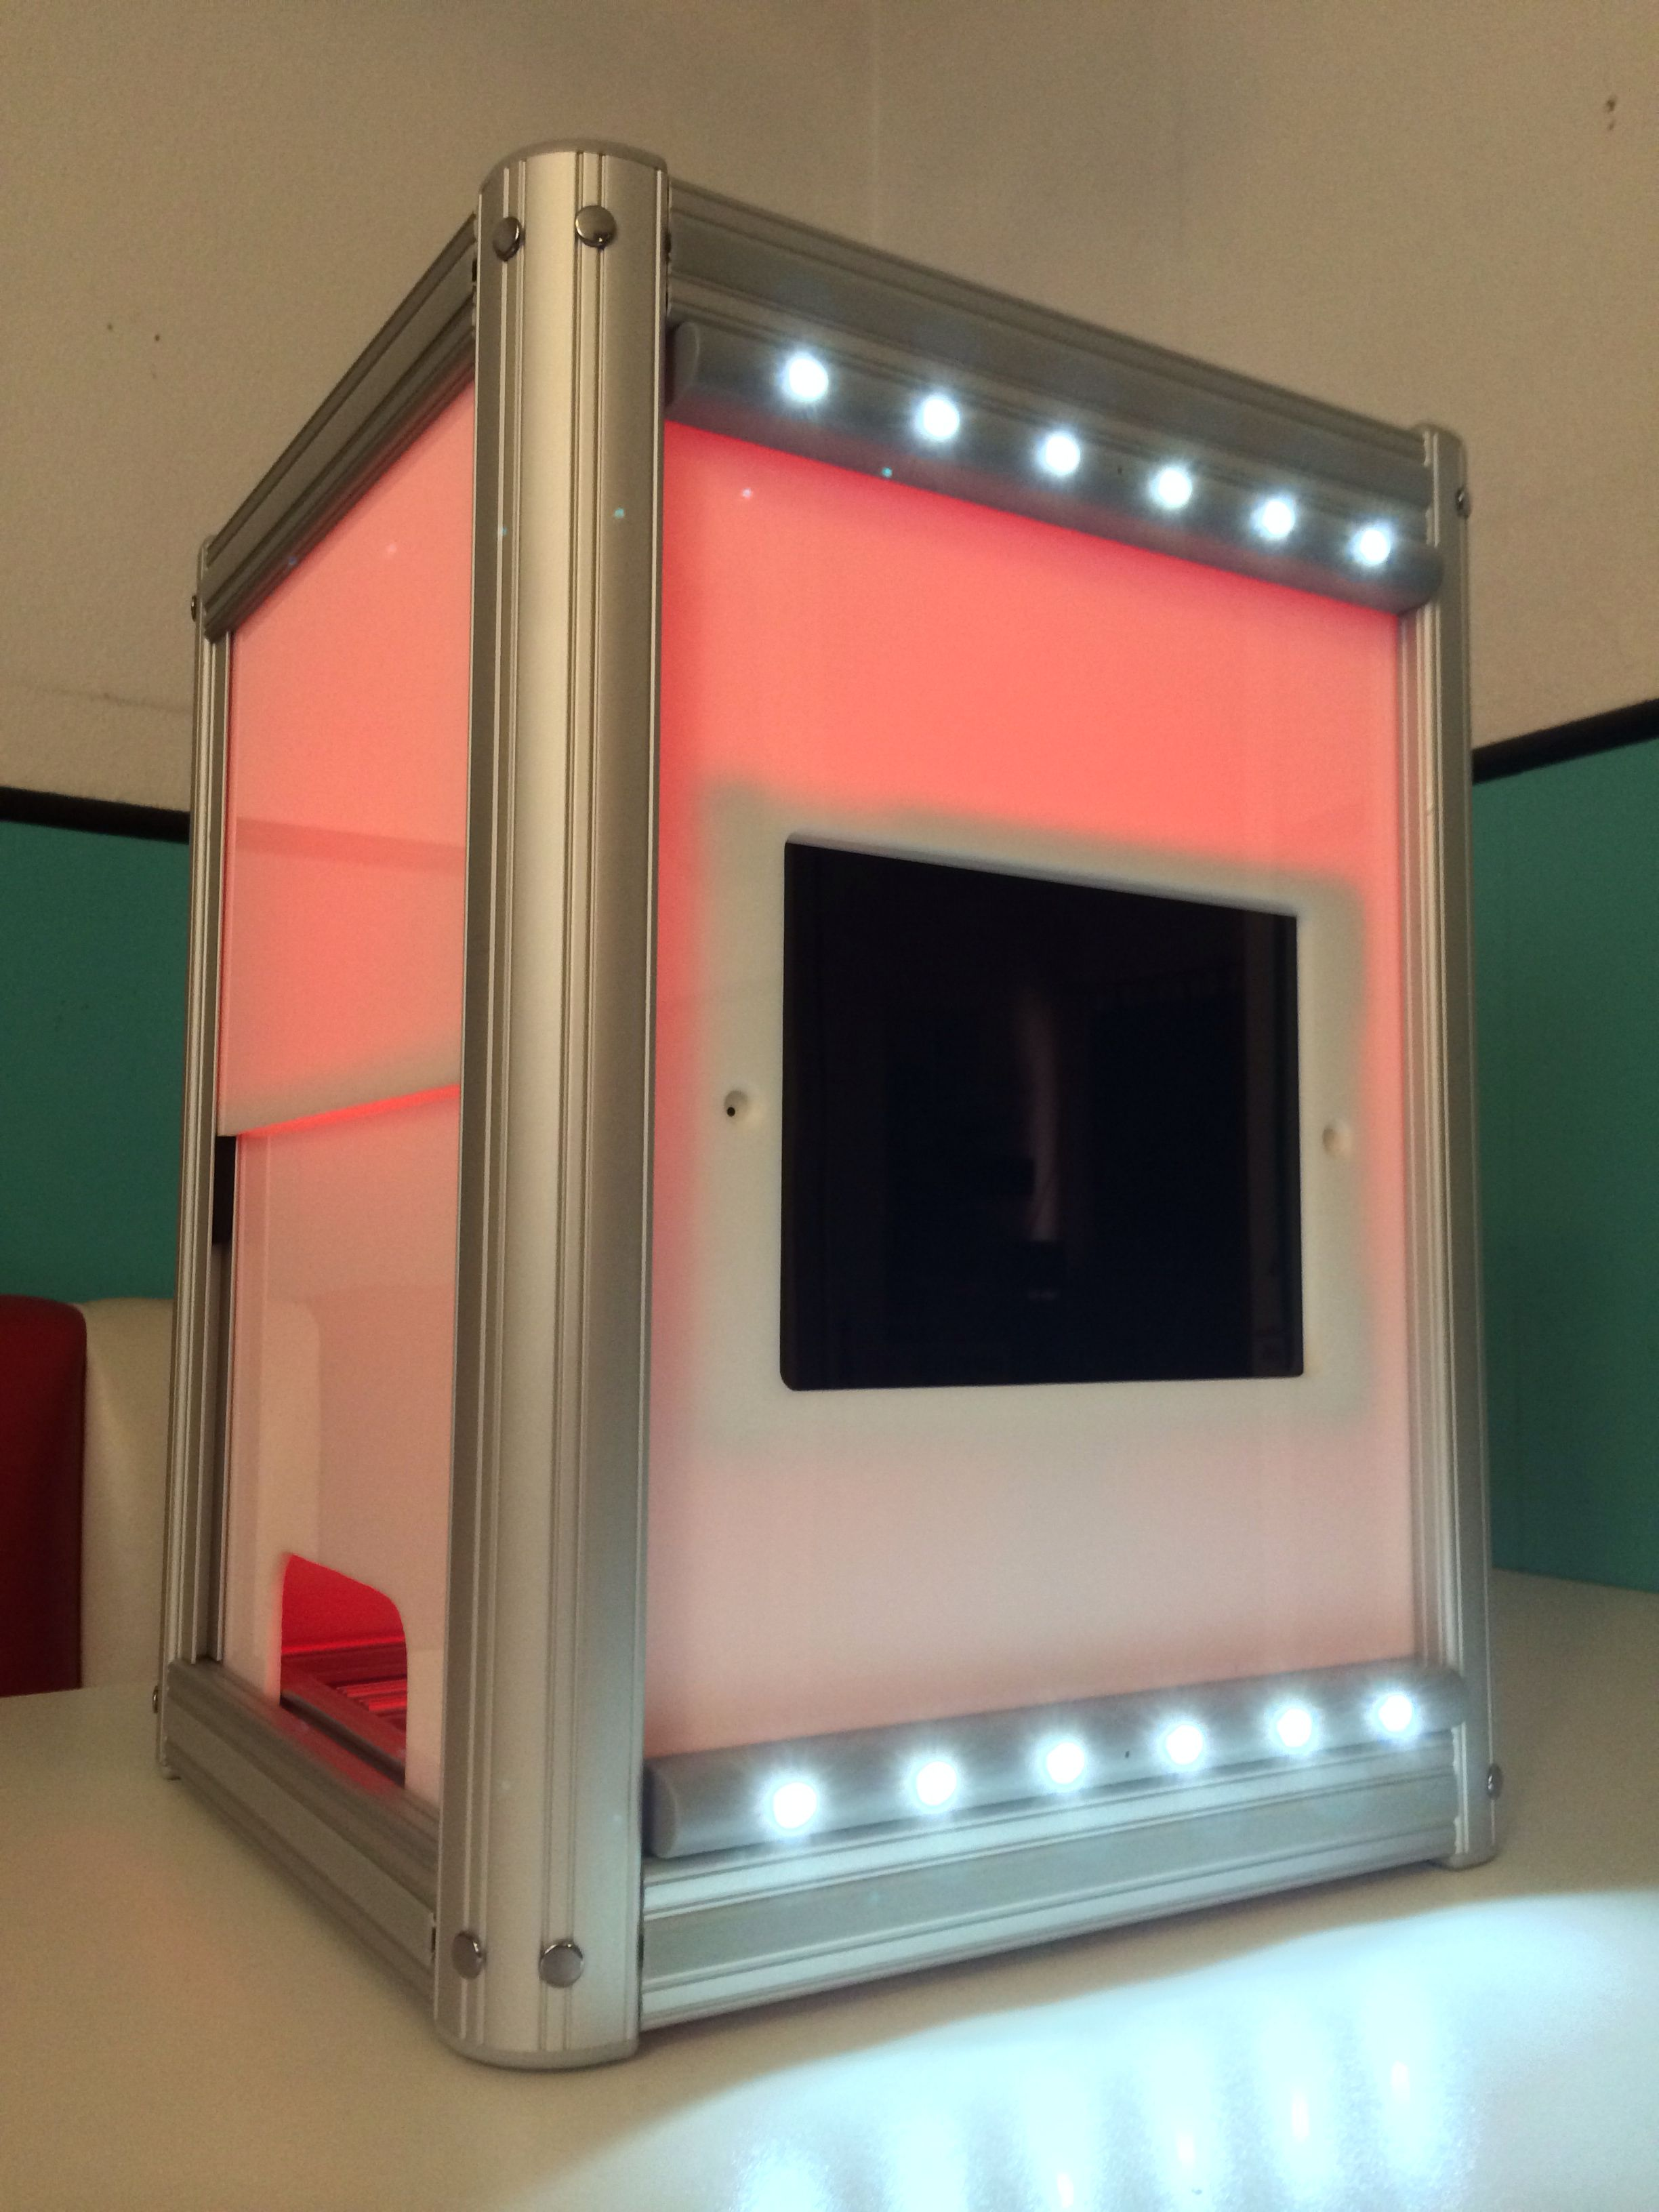 Portable open air photo booth shell for ipad air and